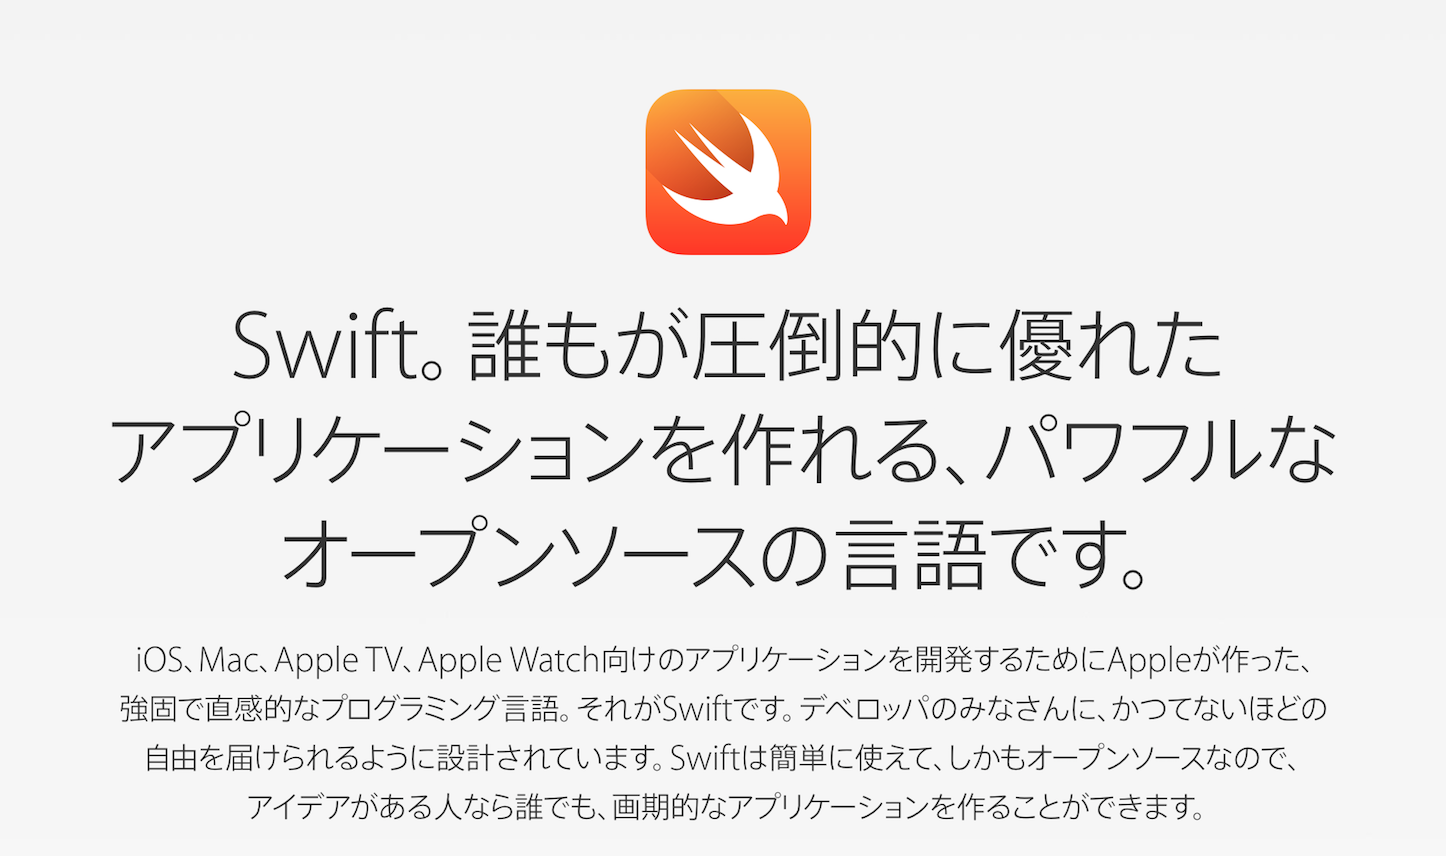 Swift Apple Homepage